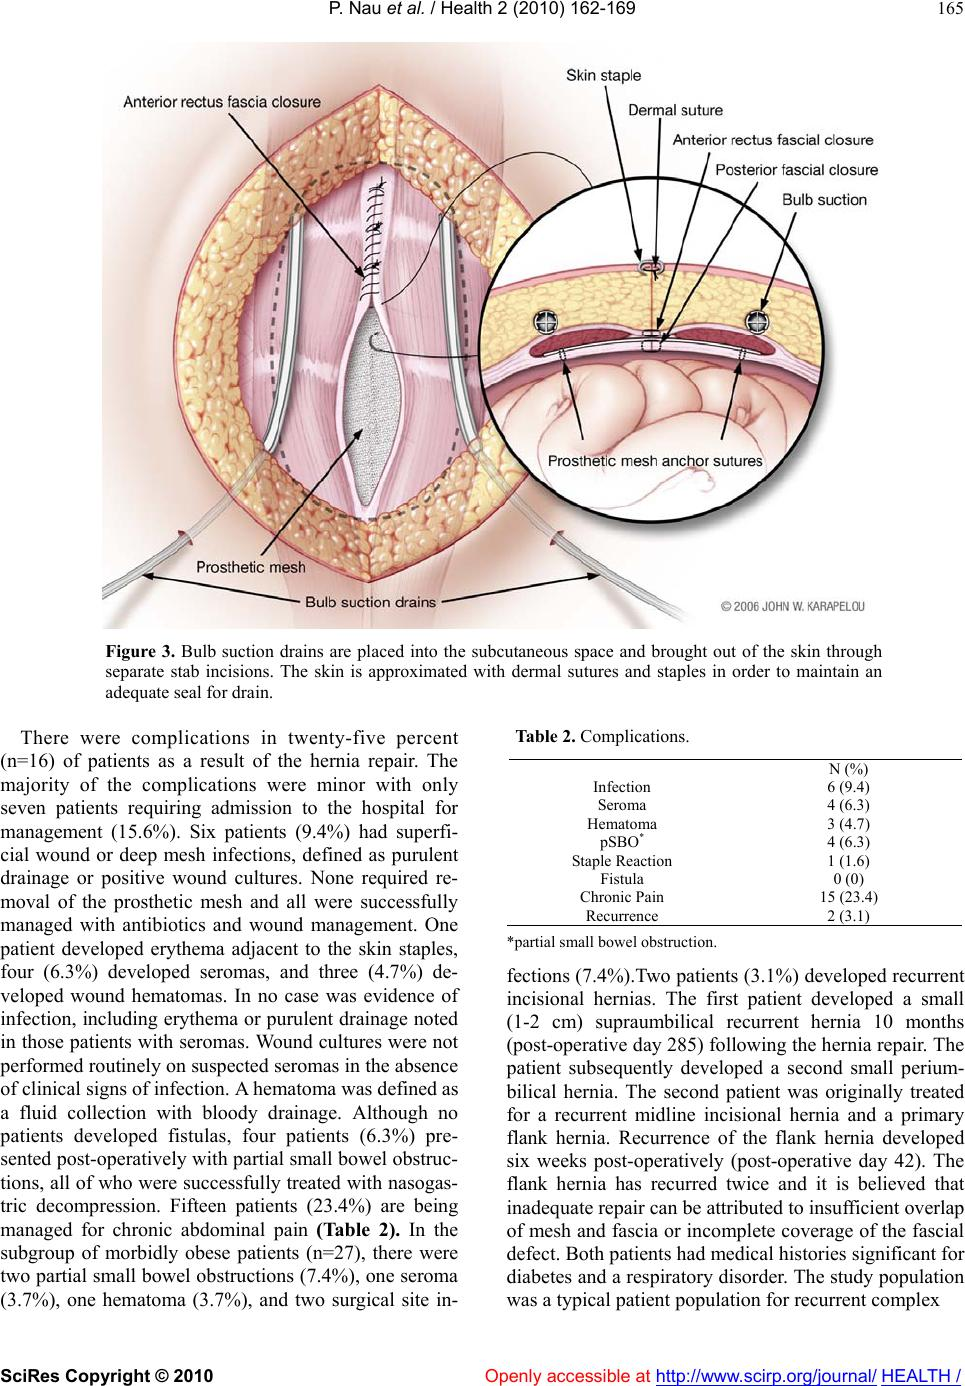 Modified rives-stoppa repair for abdominal incisional hernias